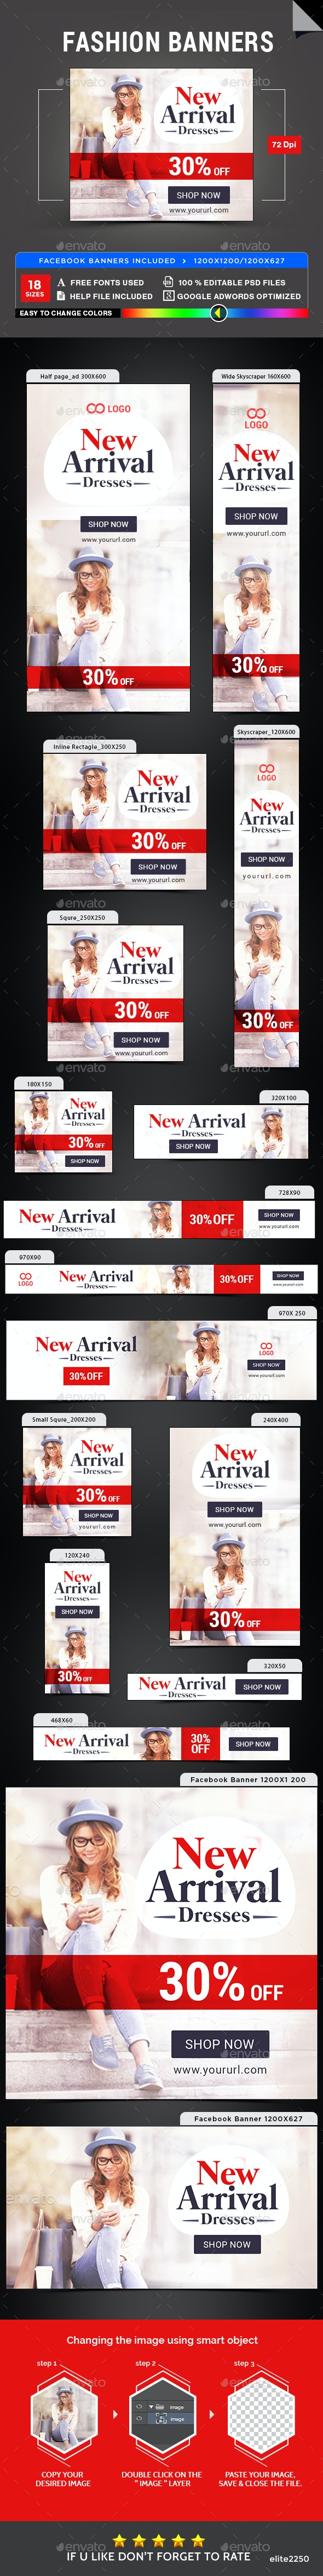 Fashion Banners - Banners & Ads Web Elements